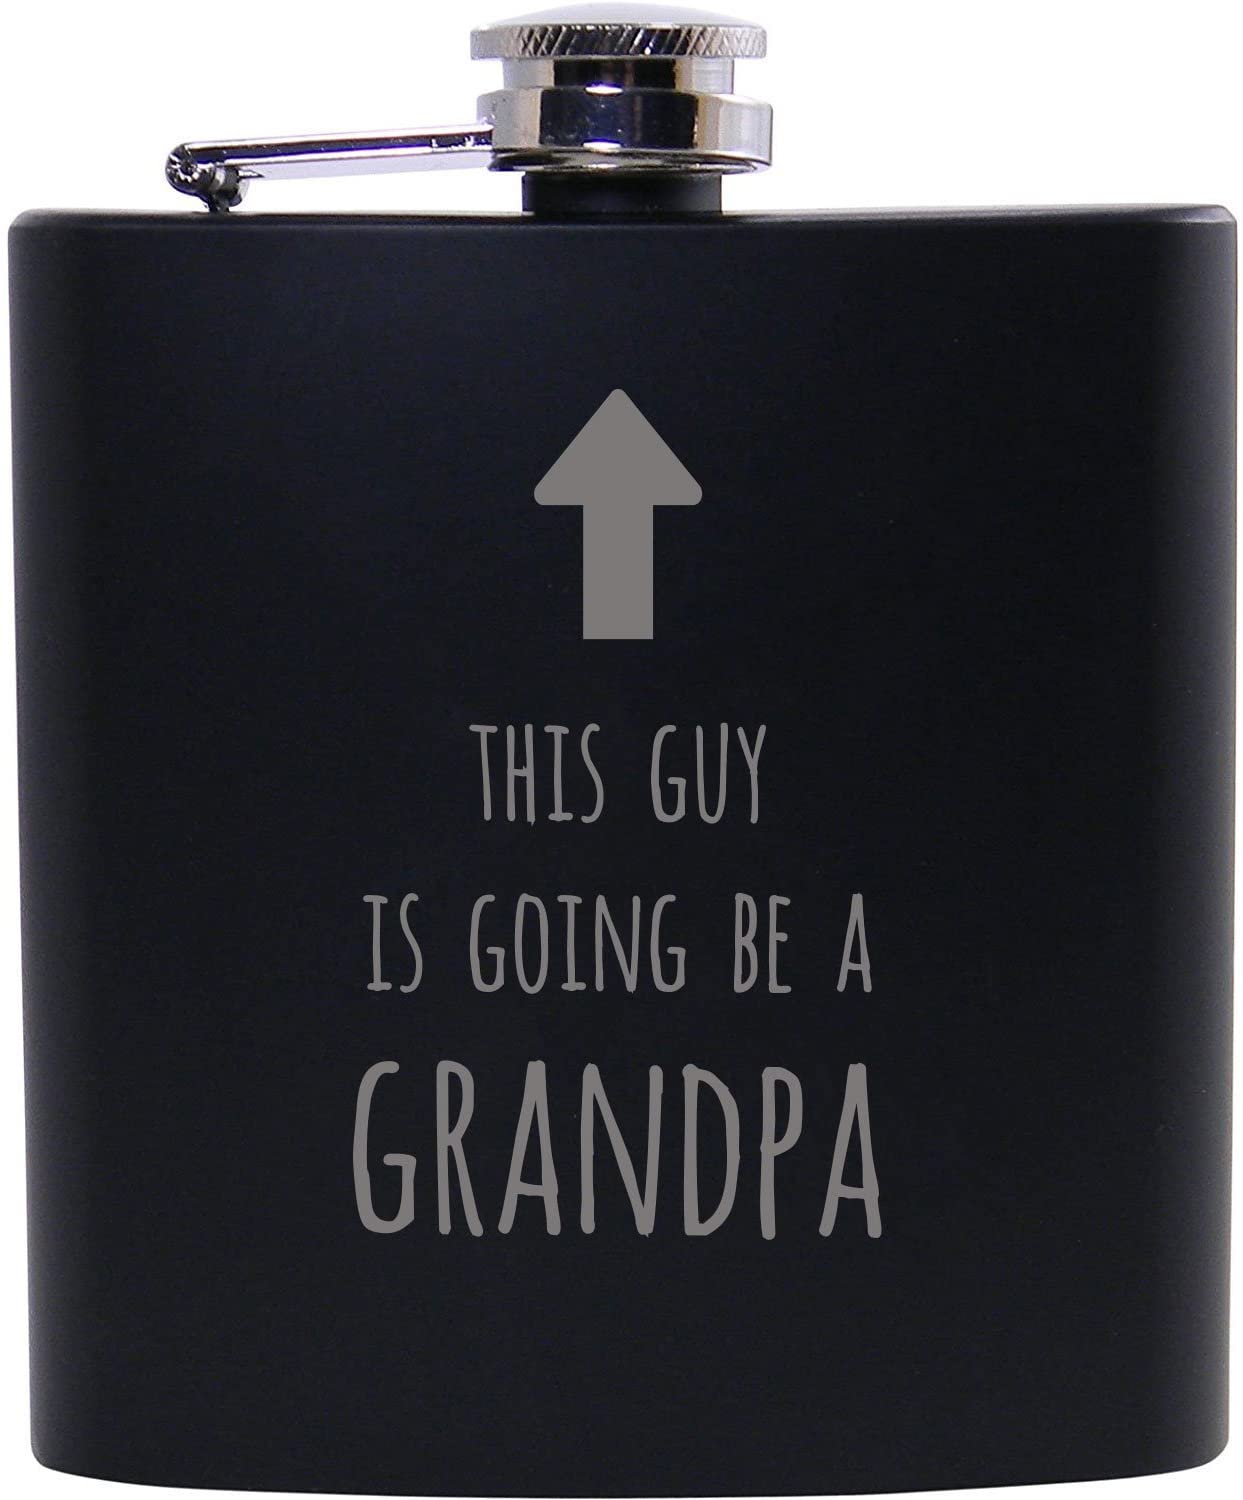 This guy is going to be a grandpa - 6oz Black Flask - Great Gift for Fathers Day, Birthday, or Christmas Gift for Dad, Grandpa, Grandfather